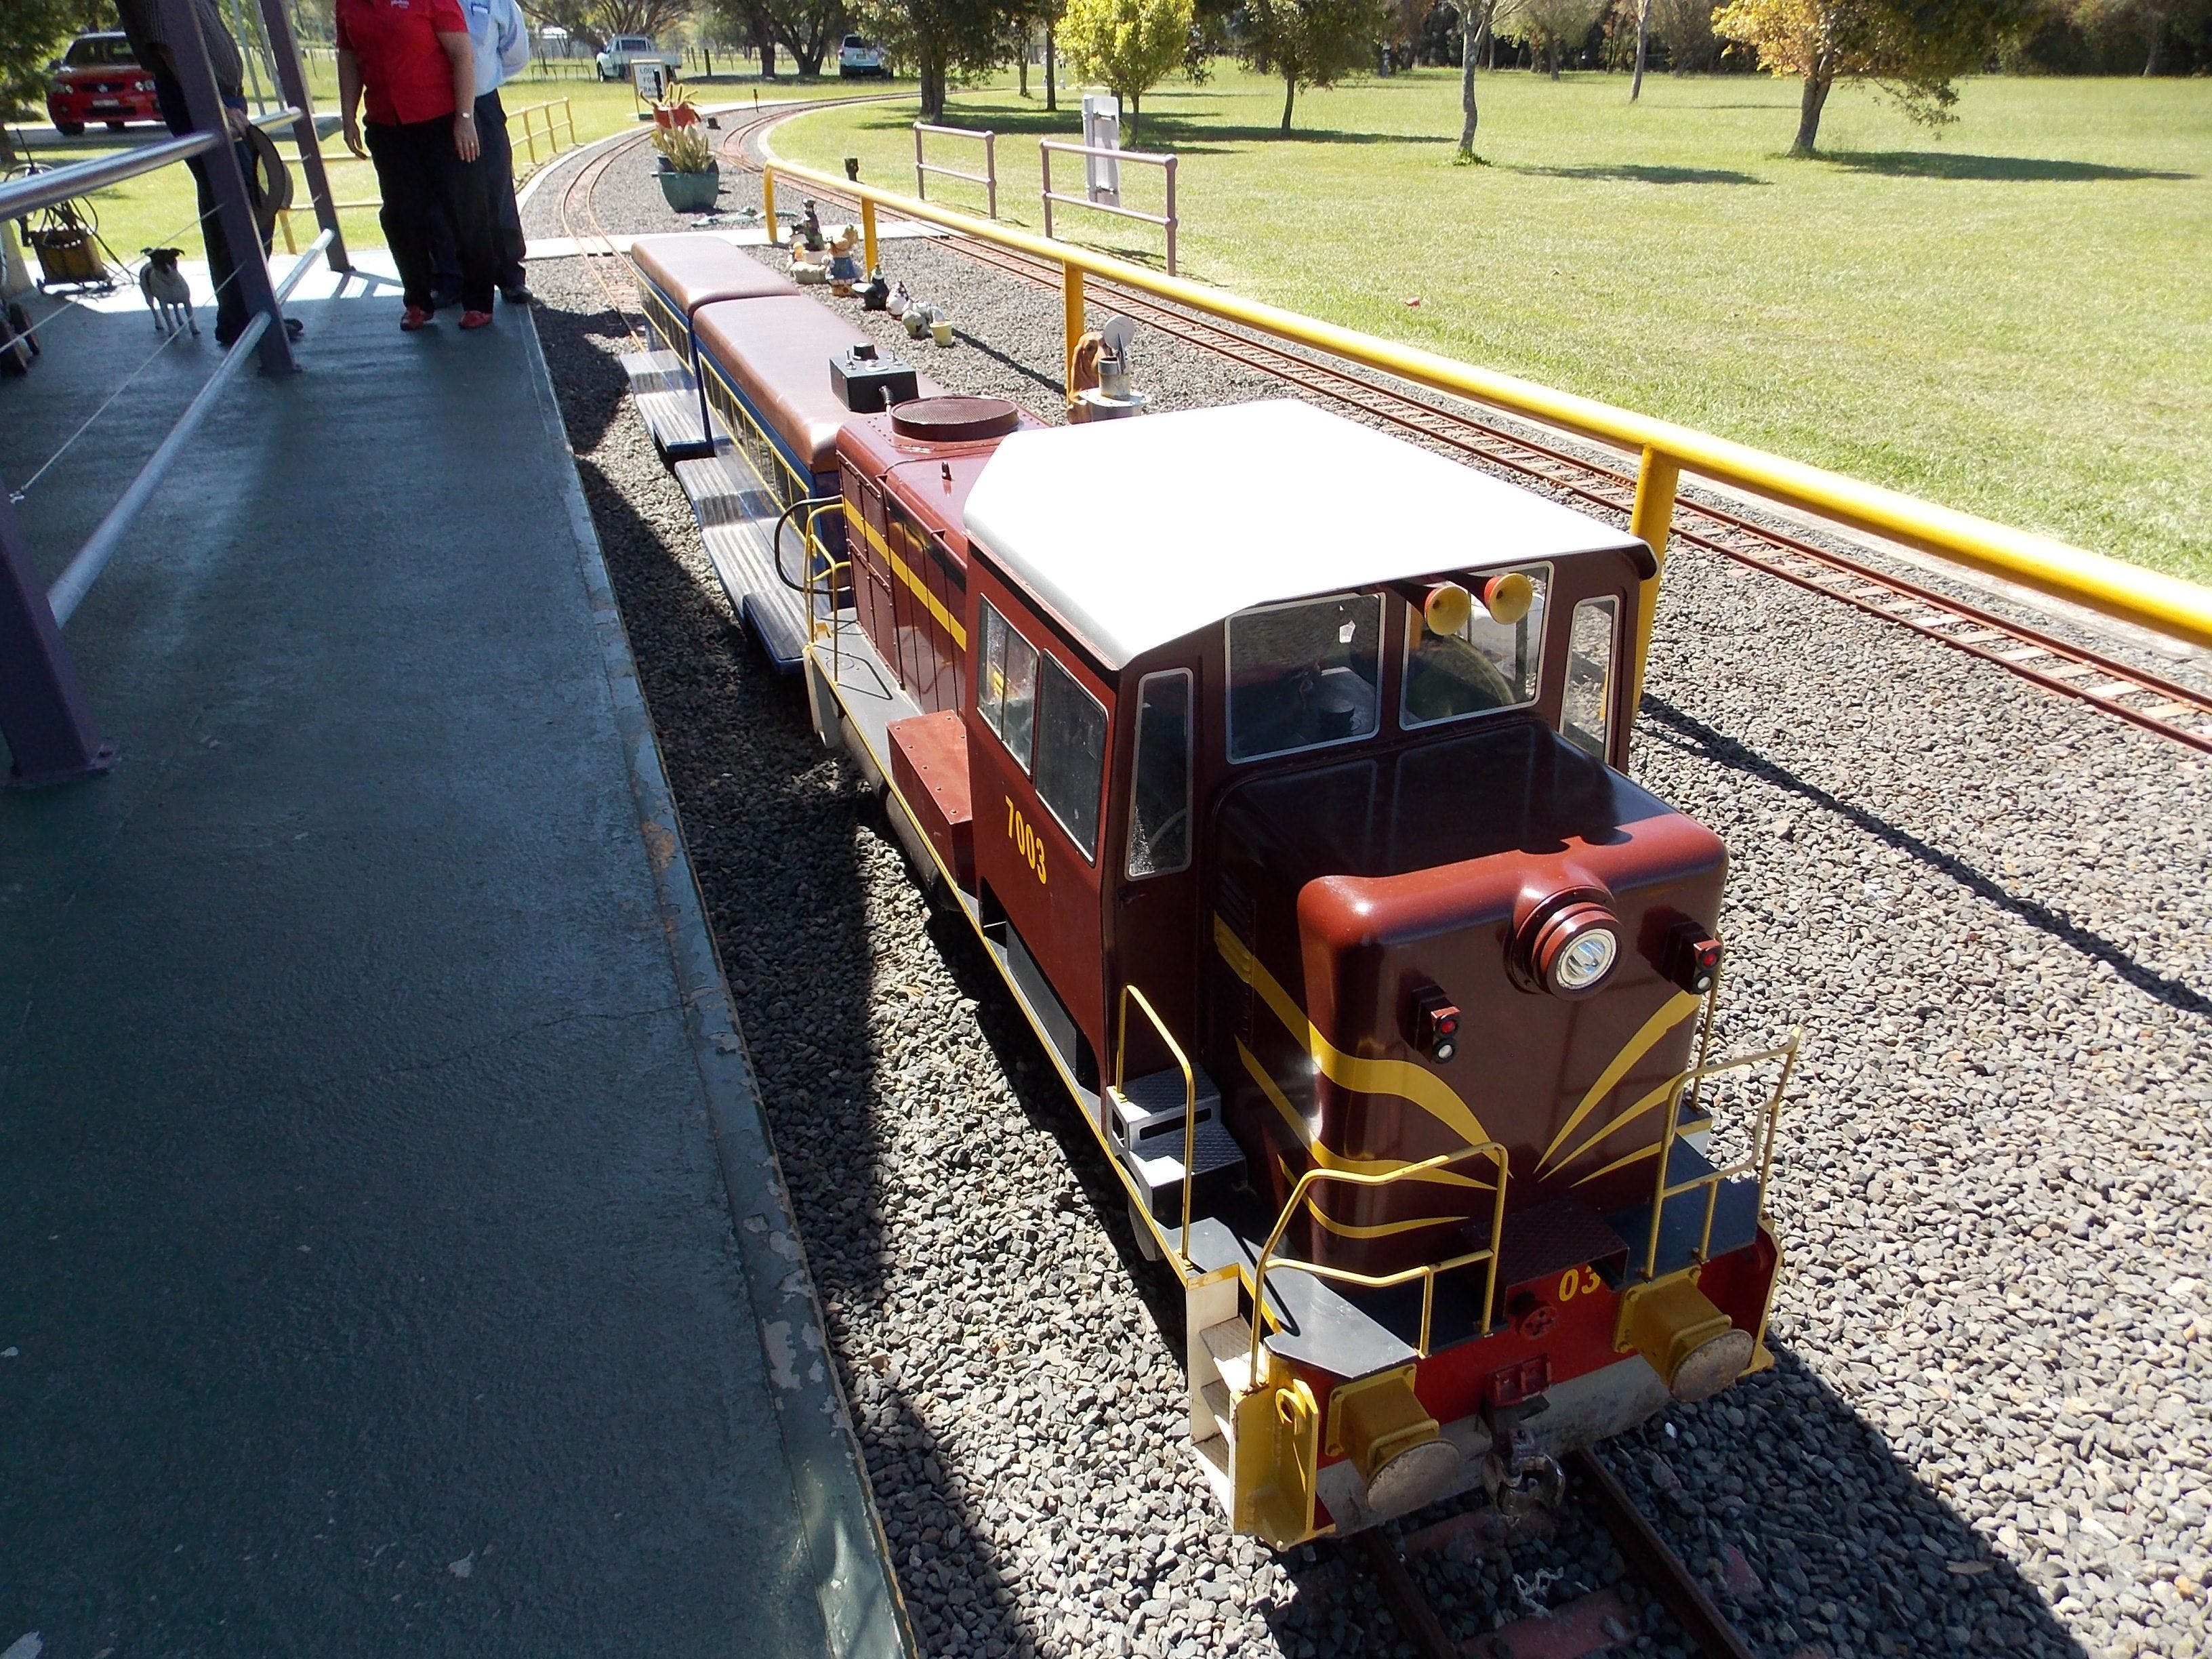 Penwood Miniature Railway - C Tourism